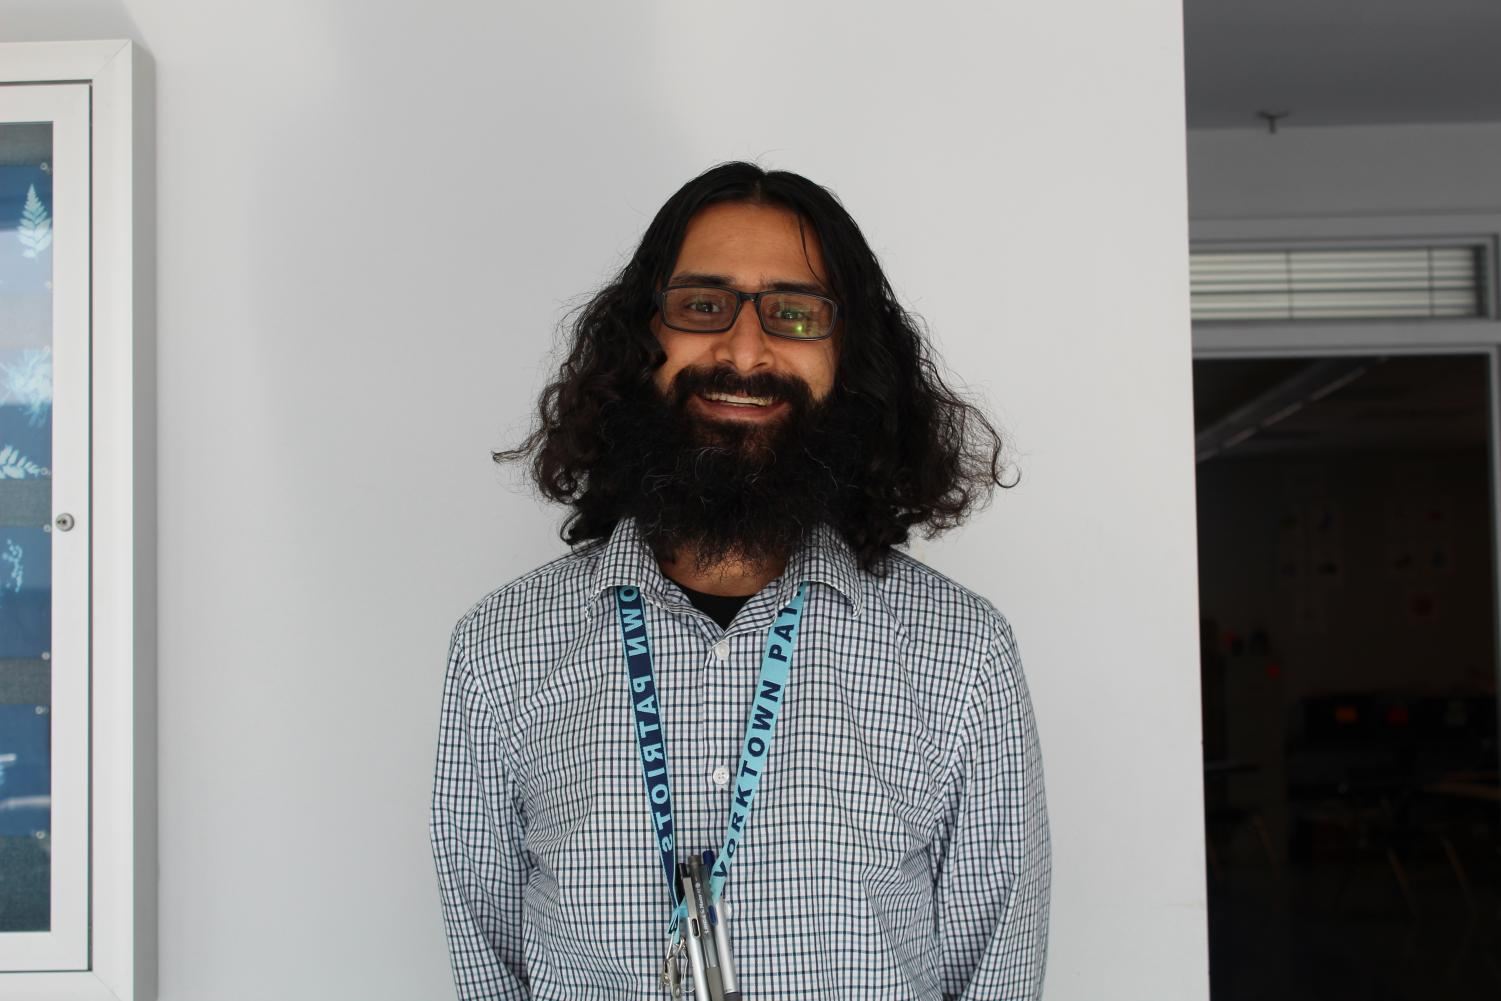 Mr. Raut has adapted to Yorktown, working with the Best Buddies chapter and co-teaching General Education classes.